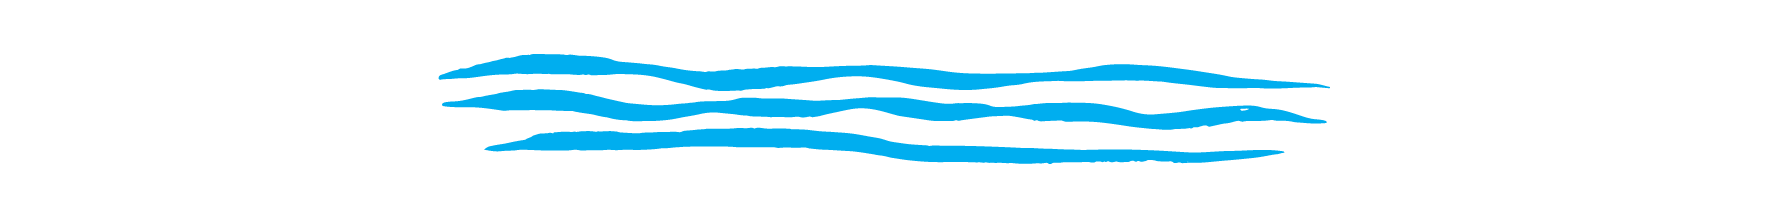 Waves_Small-01.png